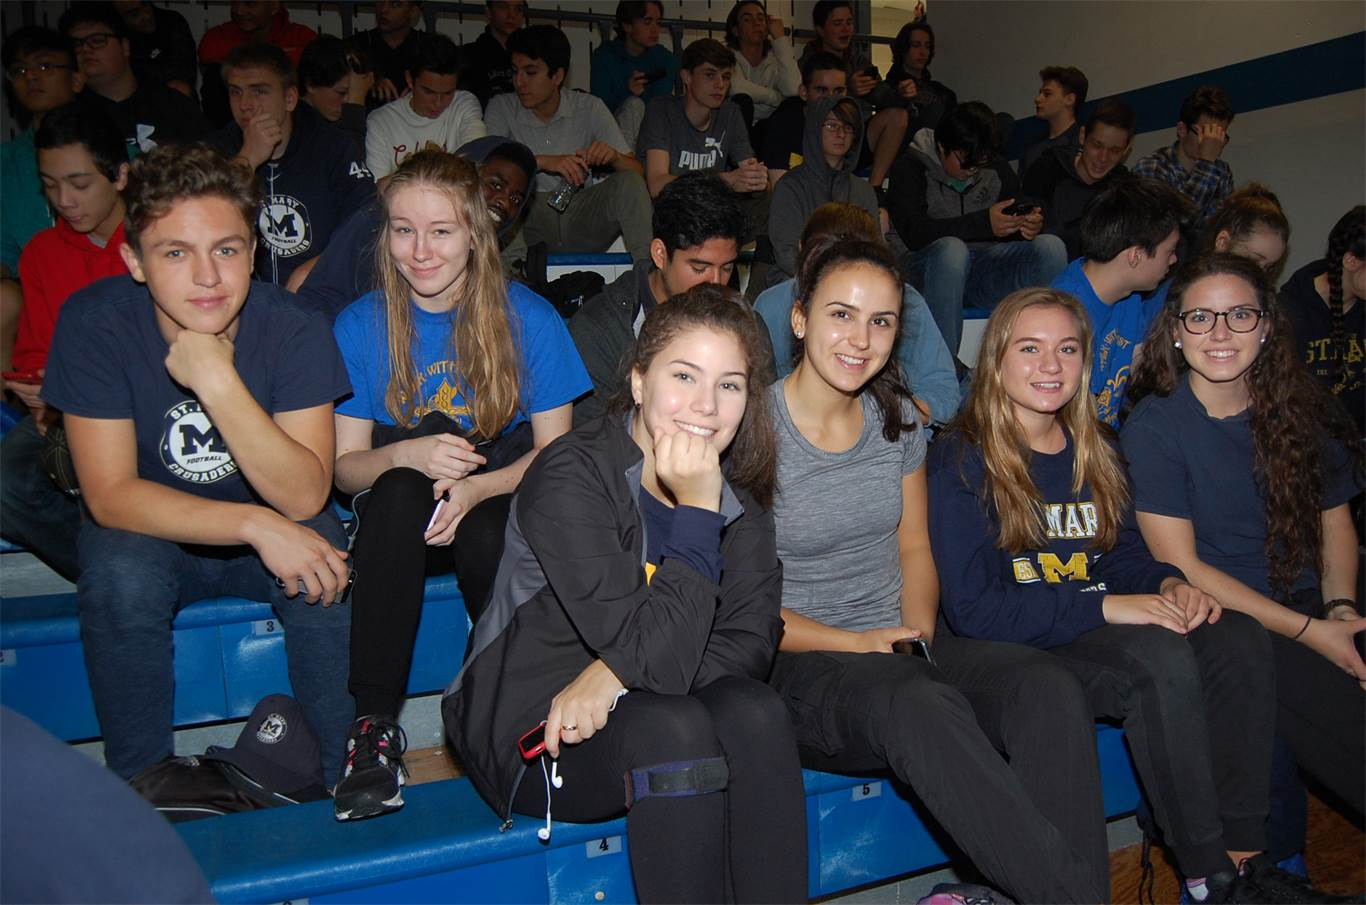 Students from St. Mary Catholic Secondary School attend a Eucharistic Celebration at Cathedral High School on Oct. 15. Close to 3,000 students and staff take part in the annual